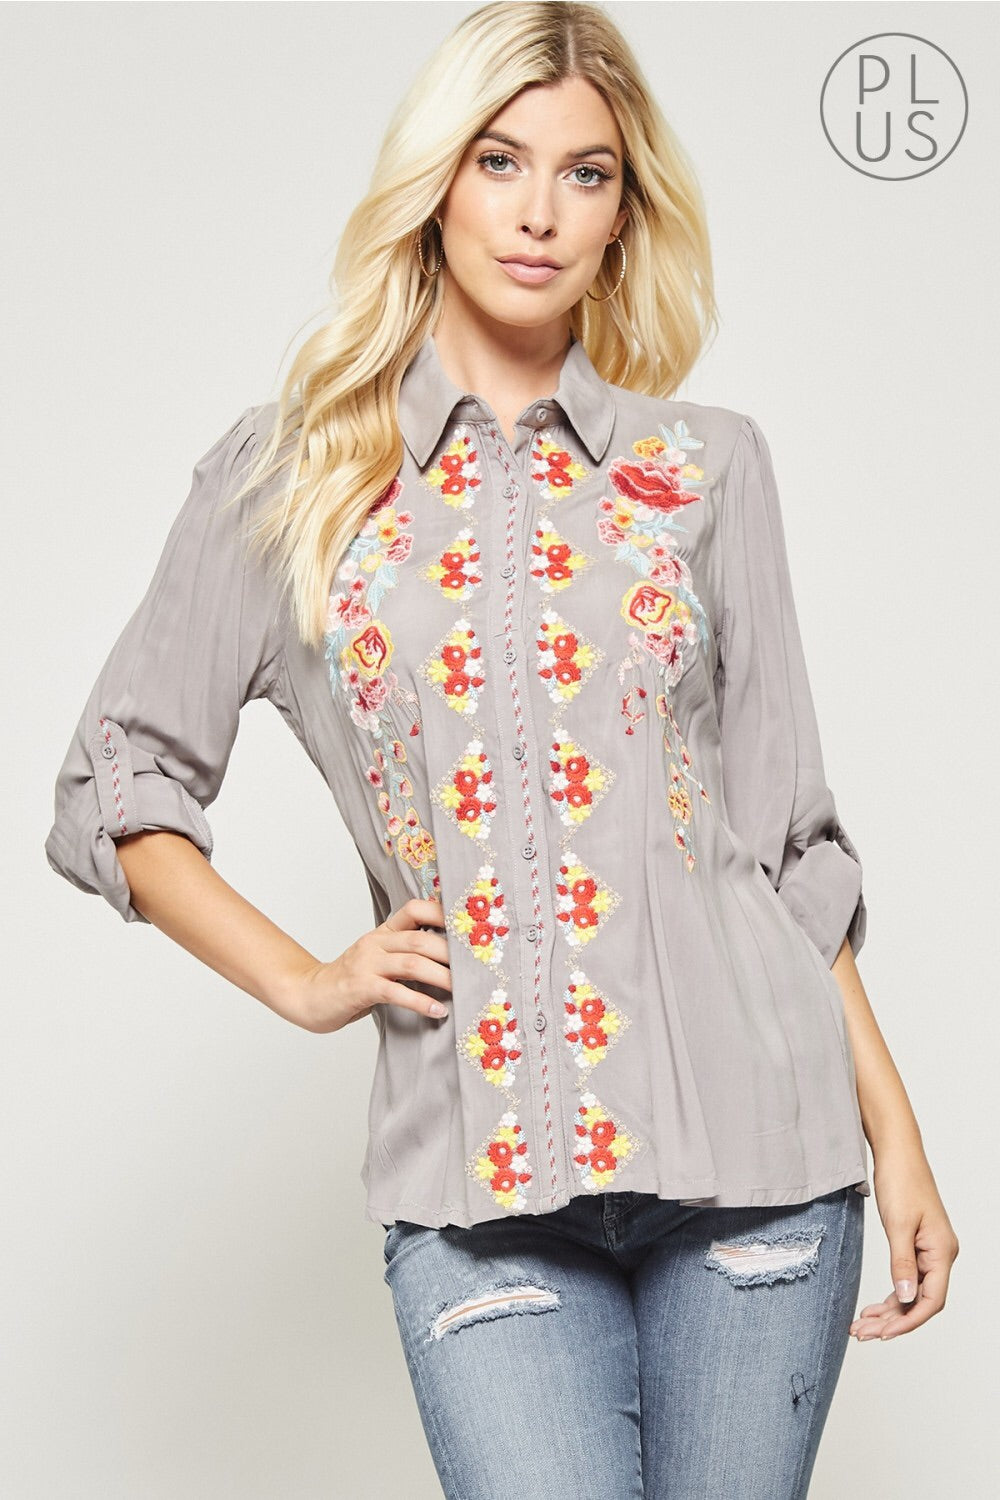 Classic Floral Embroidery Button Up Blouse